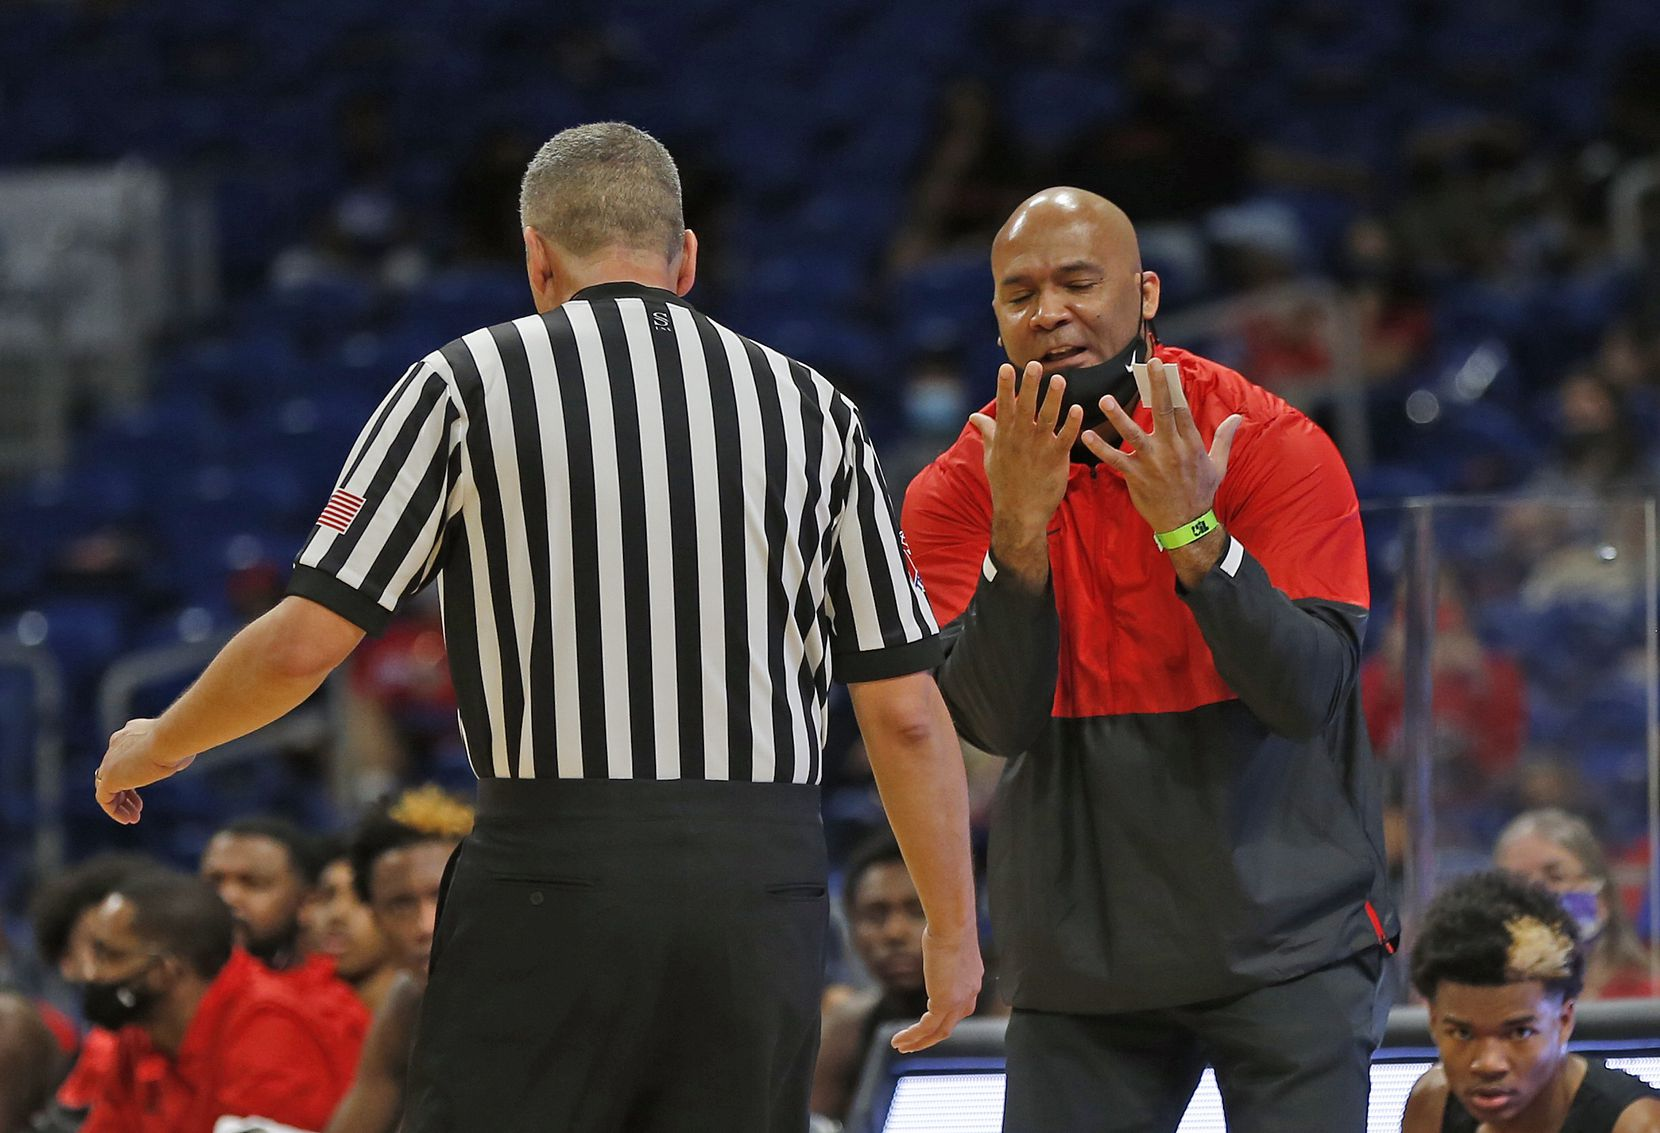 Duncanville head coach David Peavy argues a call. UIL boys Class 6A basketball state championship game between Duncanville and Austin Westlake on Saturday, March 13, 2021 at the Alamodome.